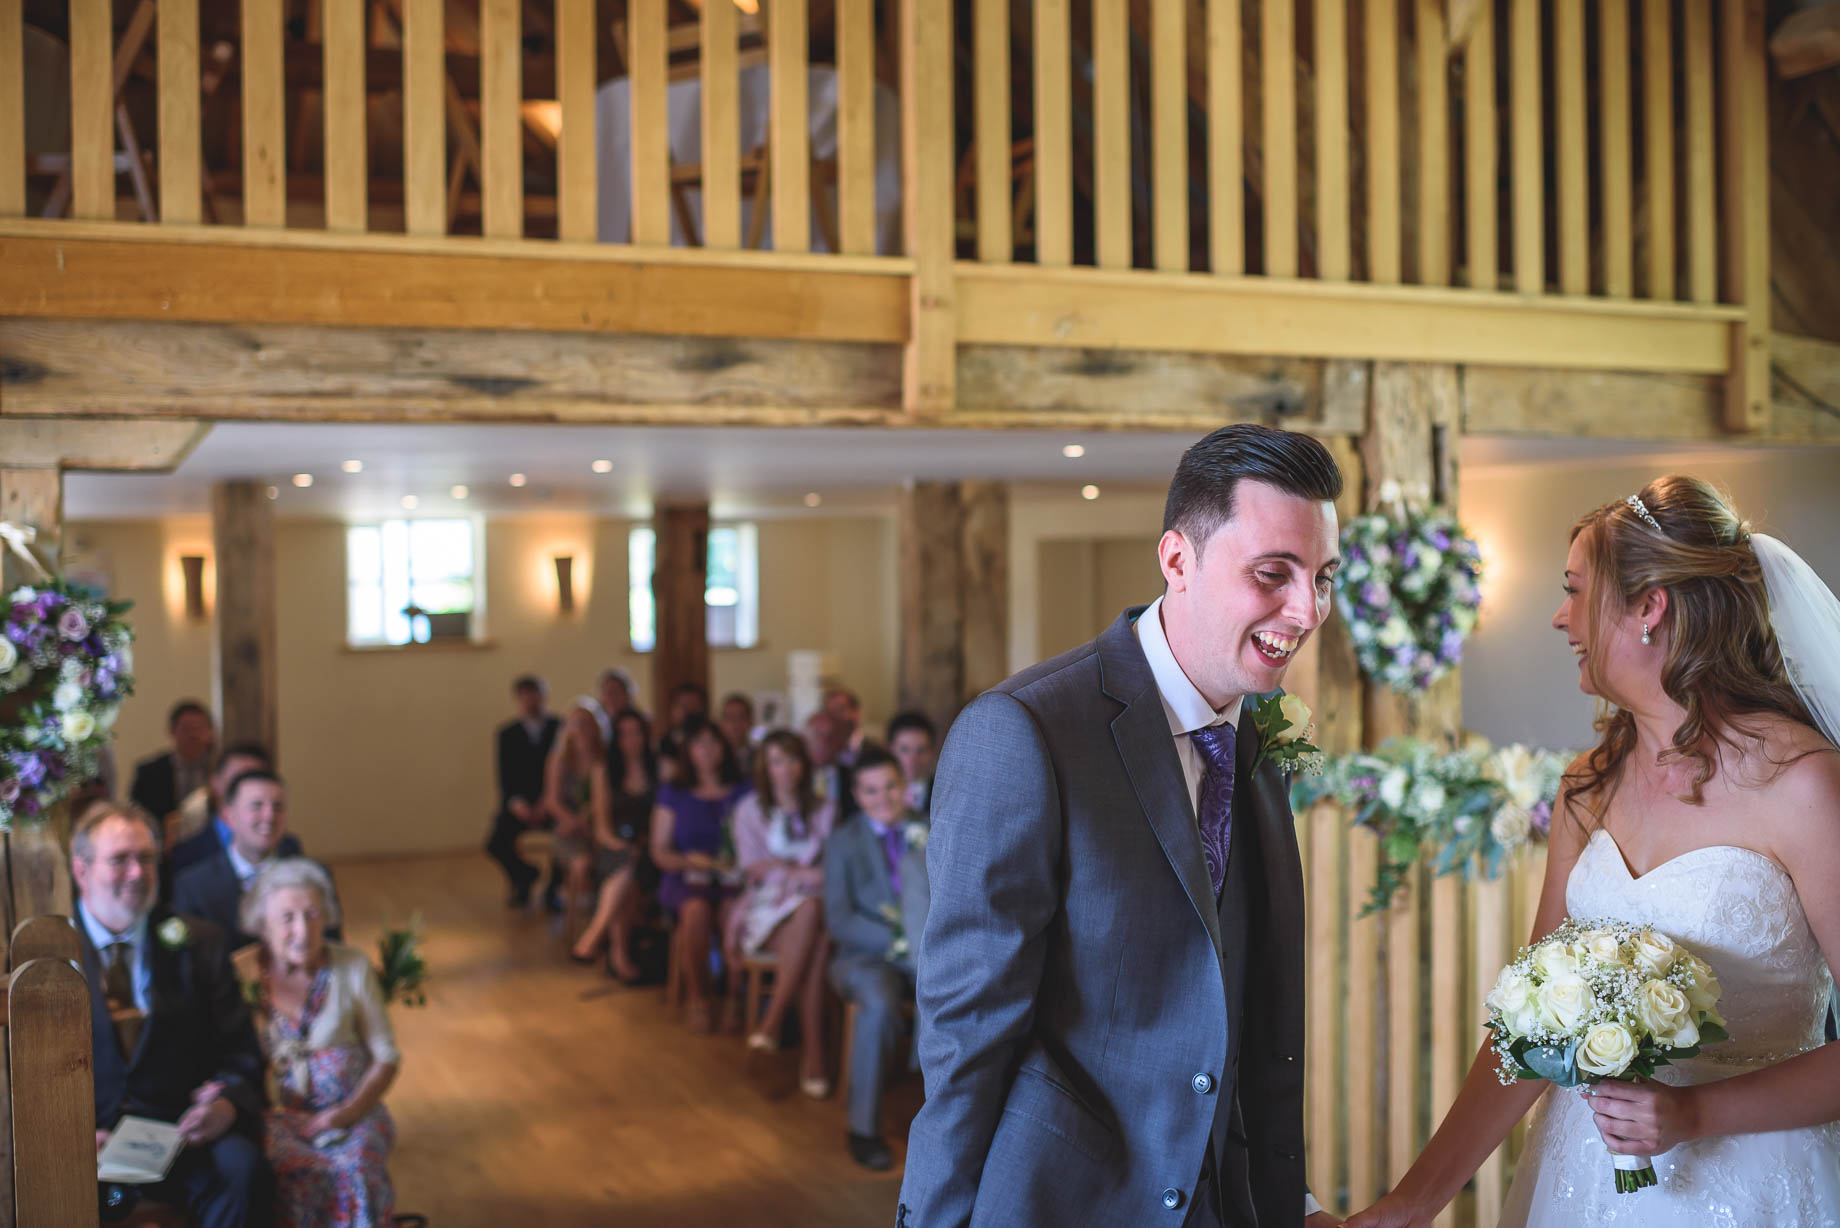 Bury Court Barn wedding photography - Guy Collier - Kirsty and Lewis (56 of 150)